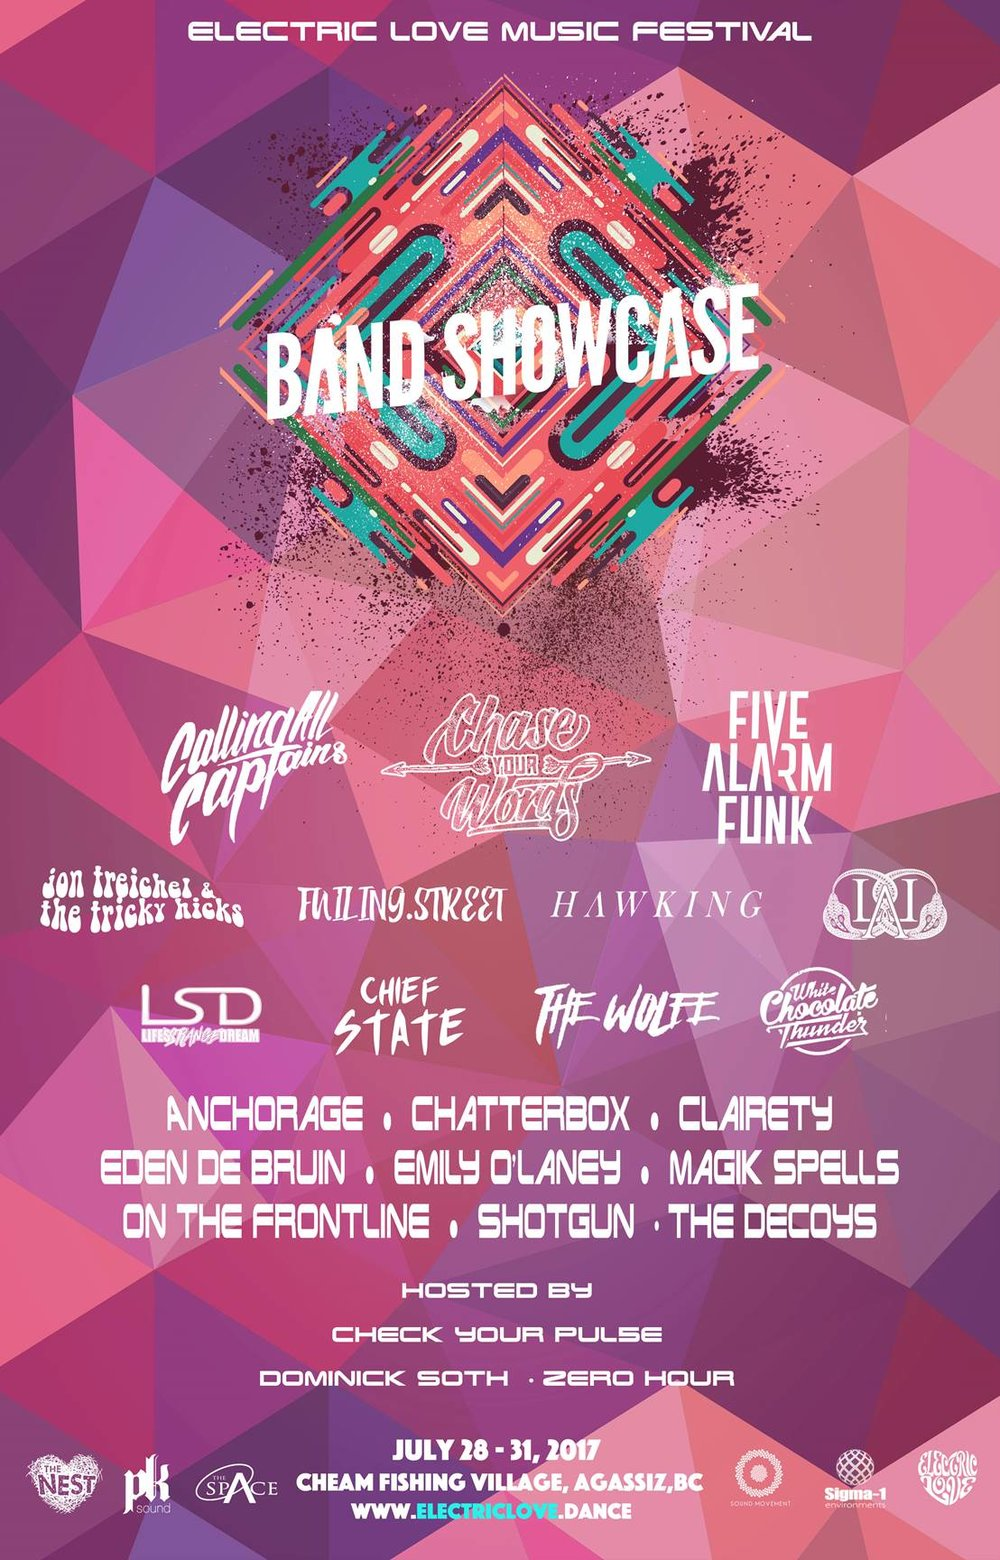 Band-Showcase-Final-Line-Up-2017-Electric-Love-Music-Festival